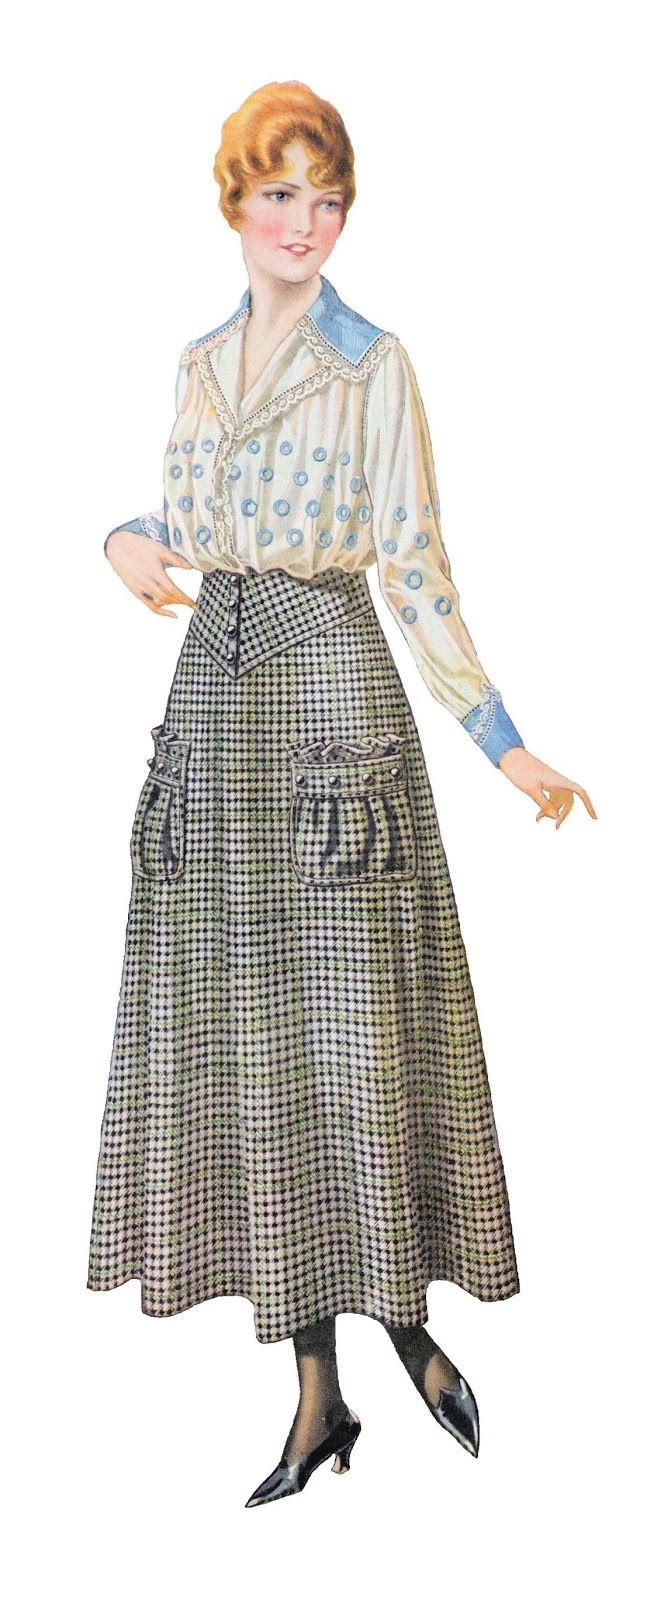 I want to make this heckered skirt. She doesn't really need a purse! This piece of vintage fashion clip art is from a 1915 clothes catalog. This looks to be a perfect spring or summer outfit by the simple look and light fabric. I hope you enjoy!